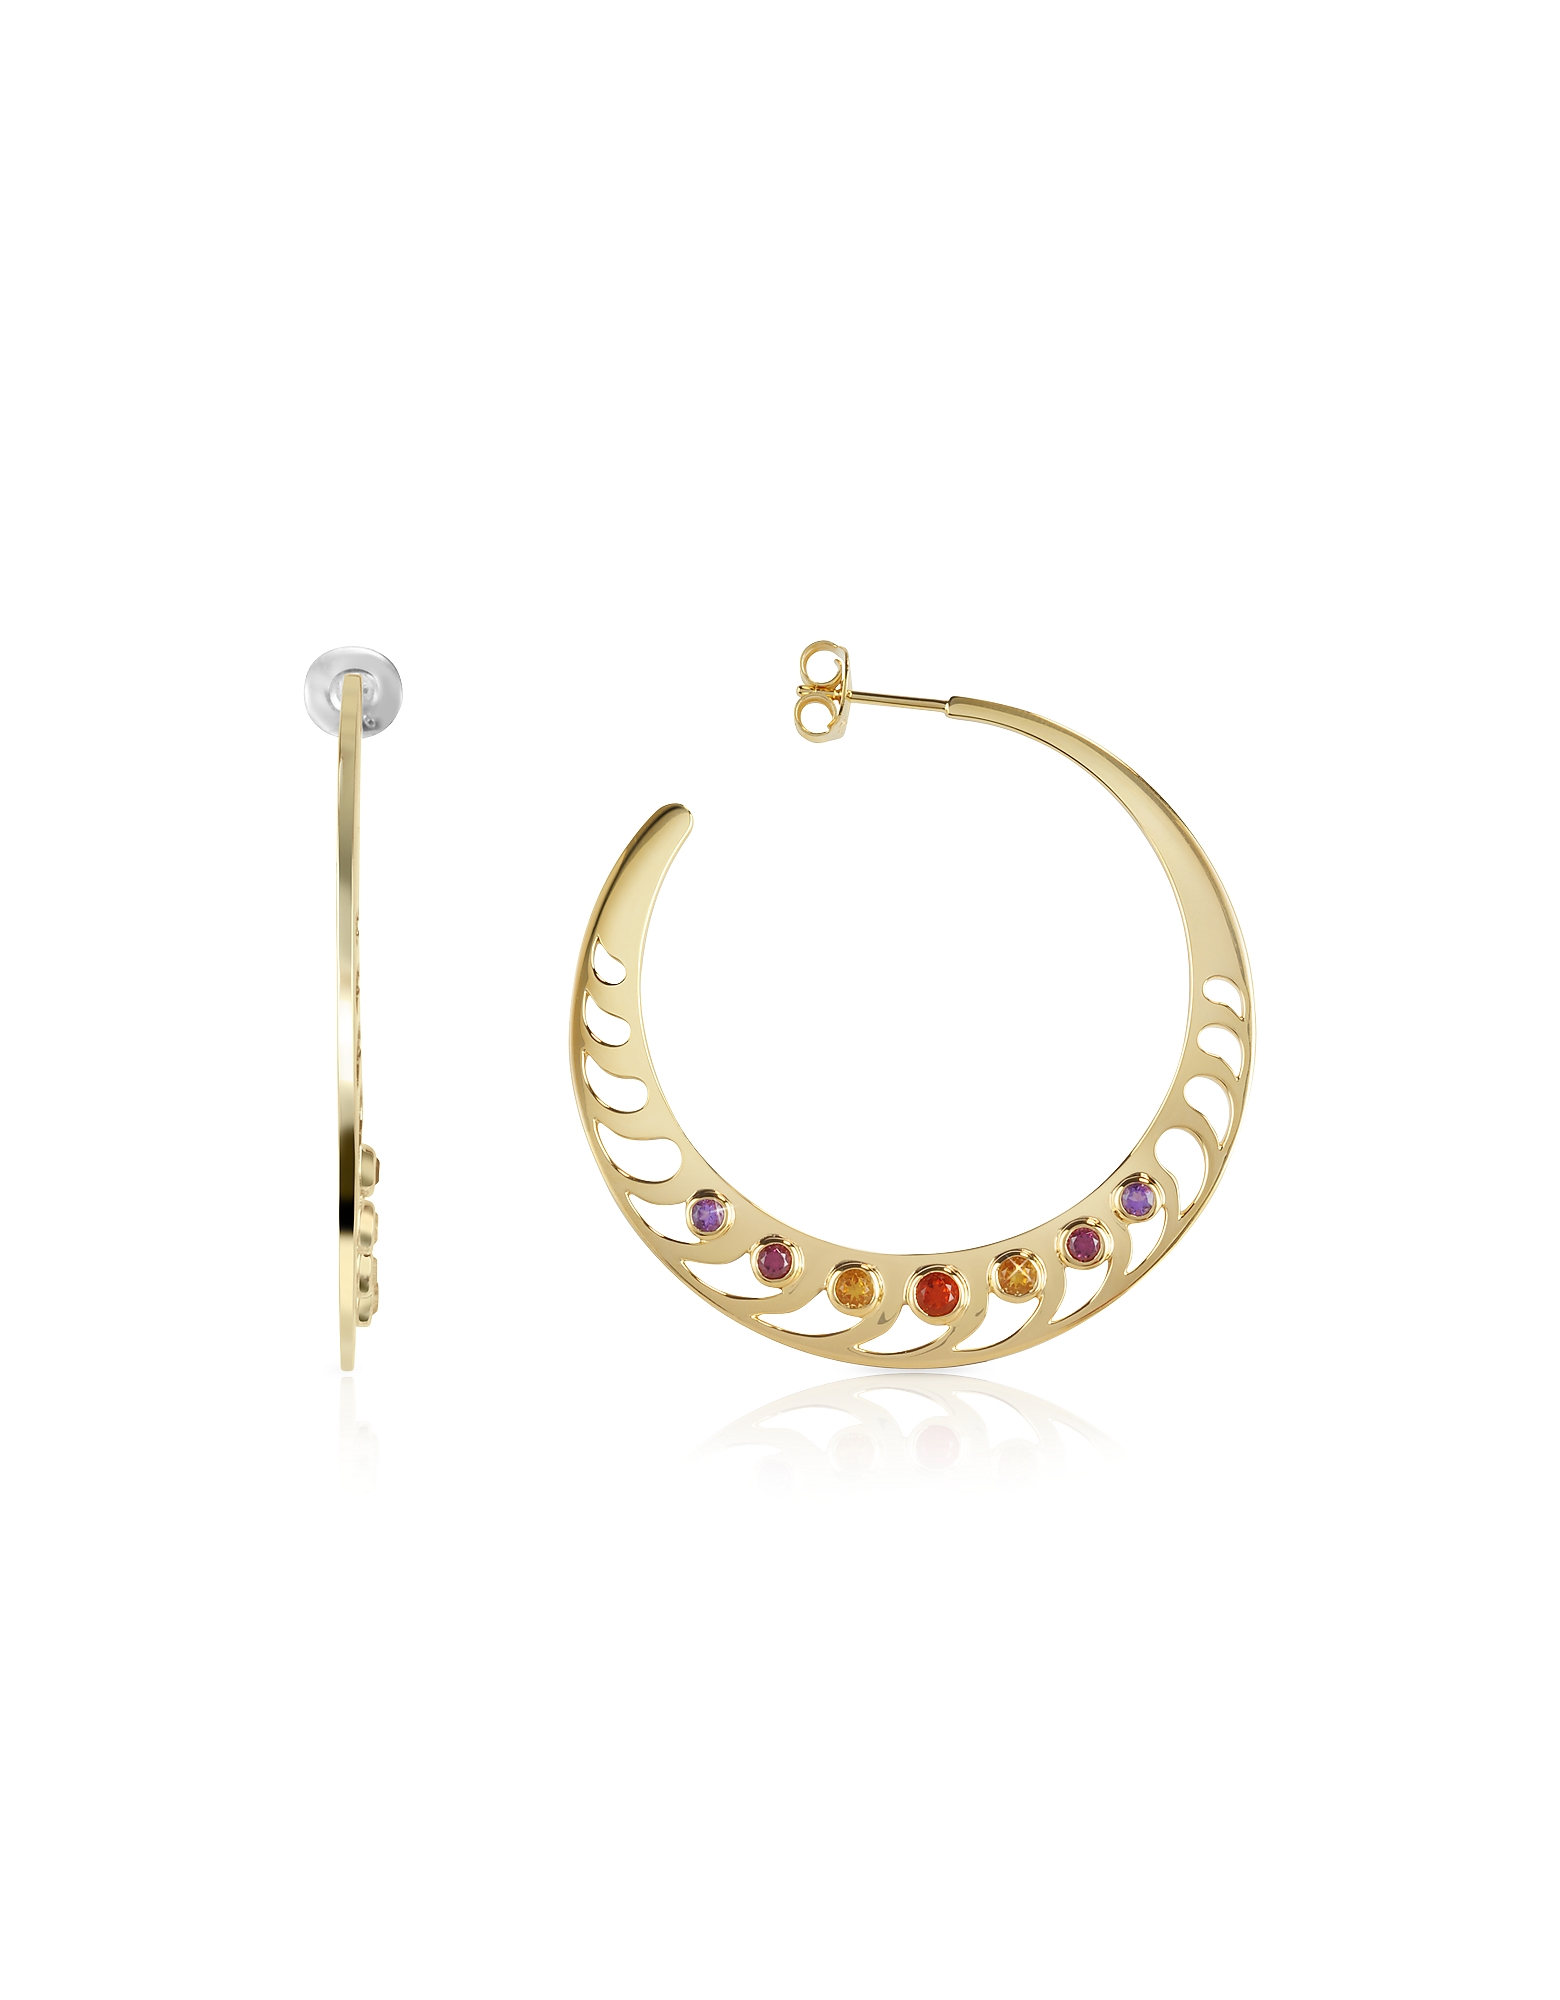 Sho London Earrings, Mari Rush Silver Vermeil Hoop Earrings